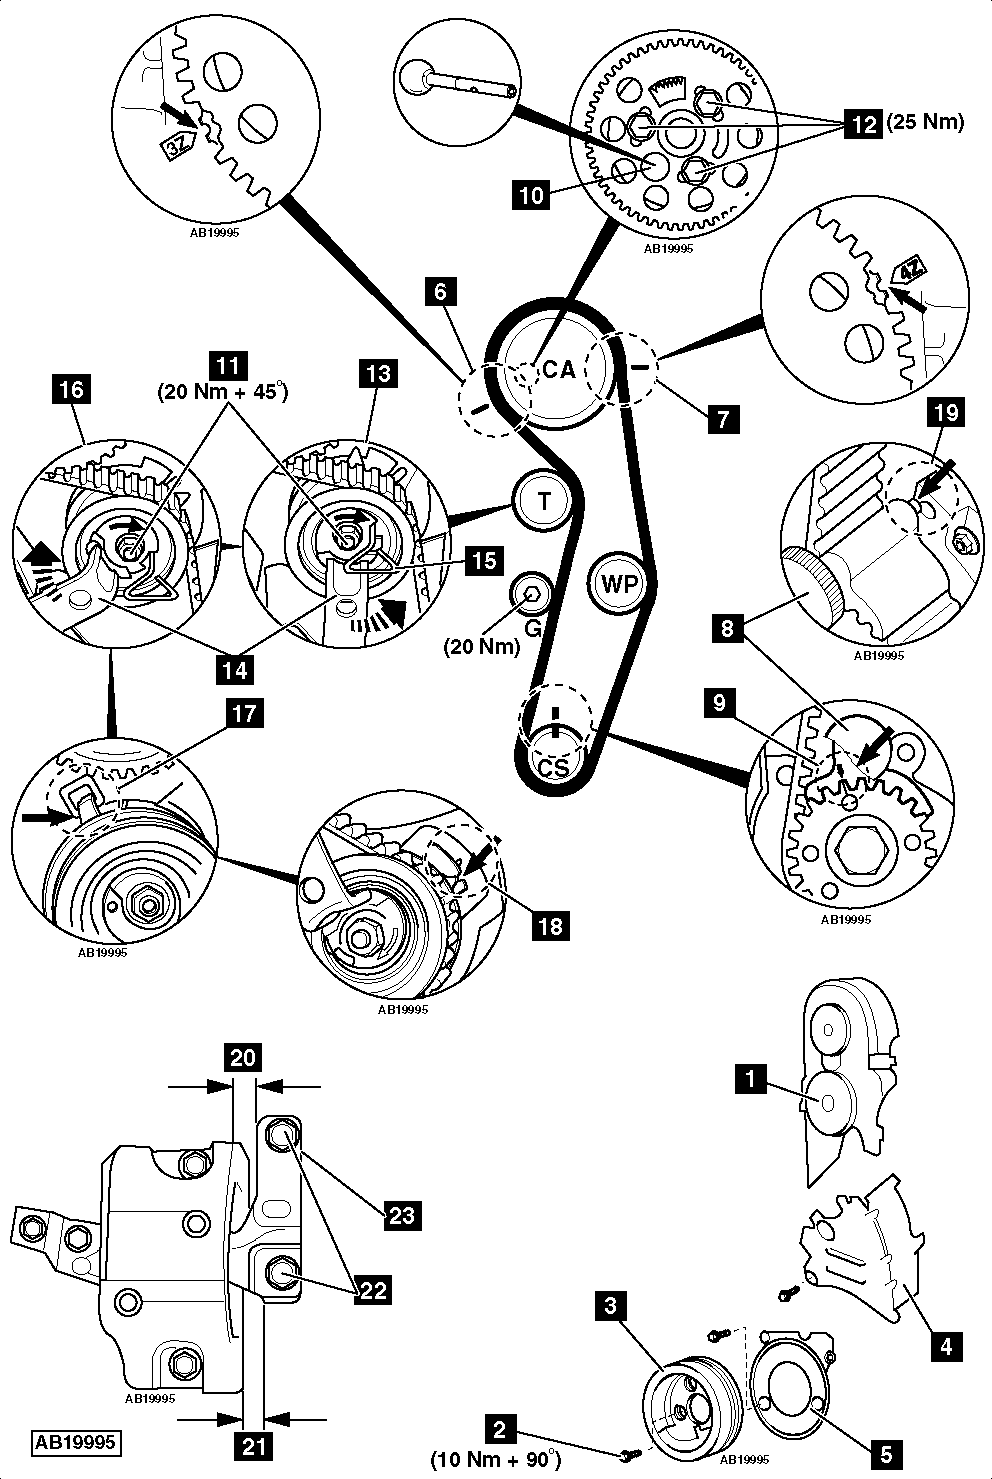 Defining Good Engineering Timing Chain Edition together with 1955 Ford Thunderbird Wiring Diagram besides Vw Beetle 1 8t Engine moreover 2005 Vw Jetta Wiring Diagram moreover How To Replace Timing Belt On Vw Golf 4 1 9 Tdi And 4motion. on 2004 vw beetle engine diagram